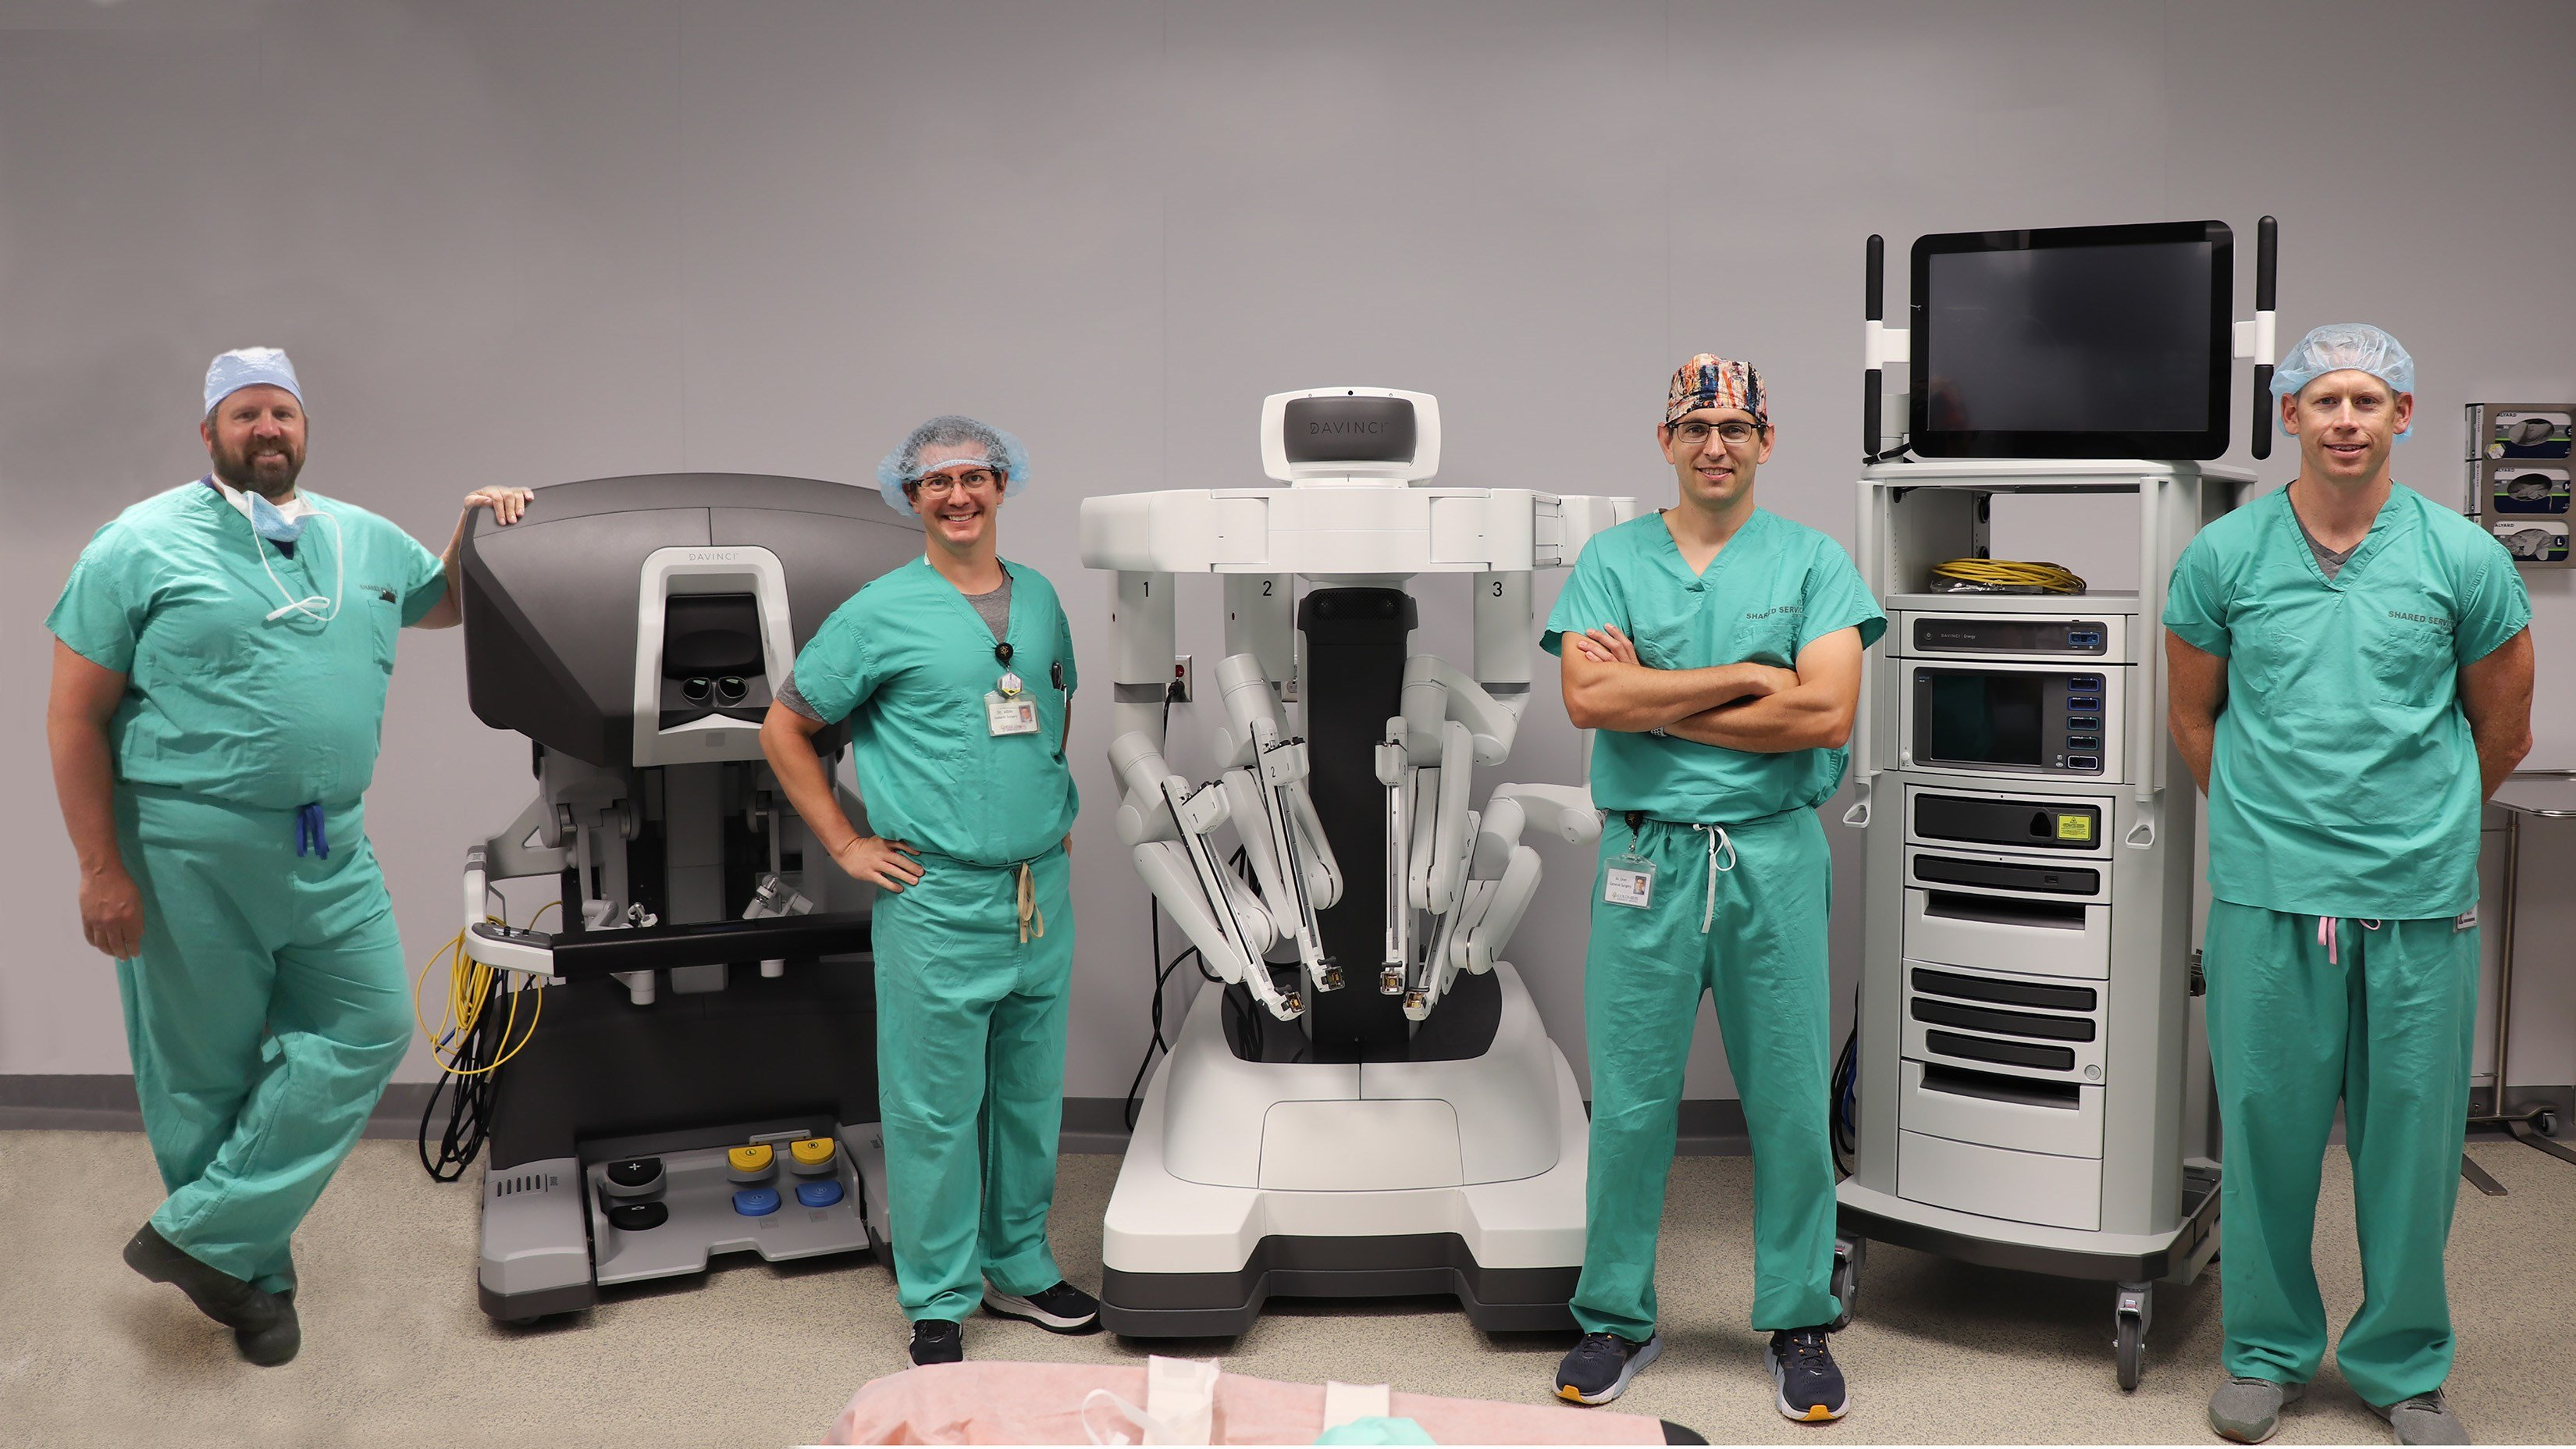 CCH completes first surgery using robotic system